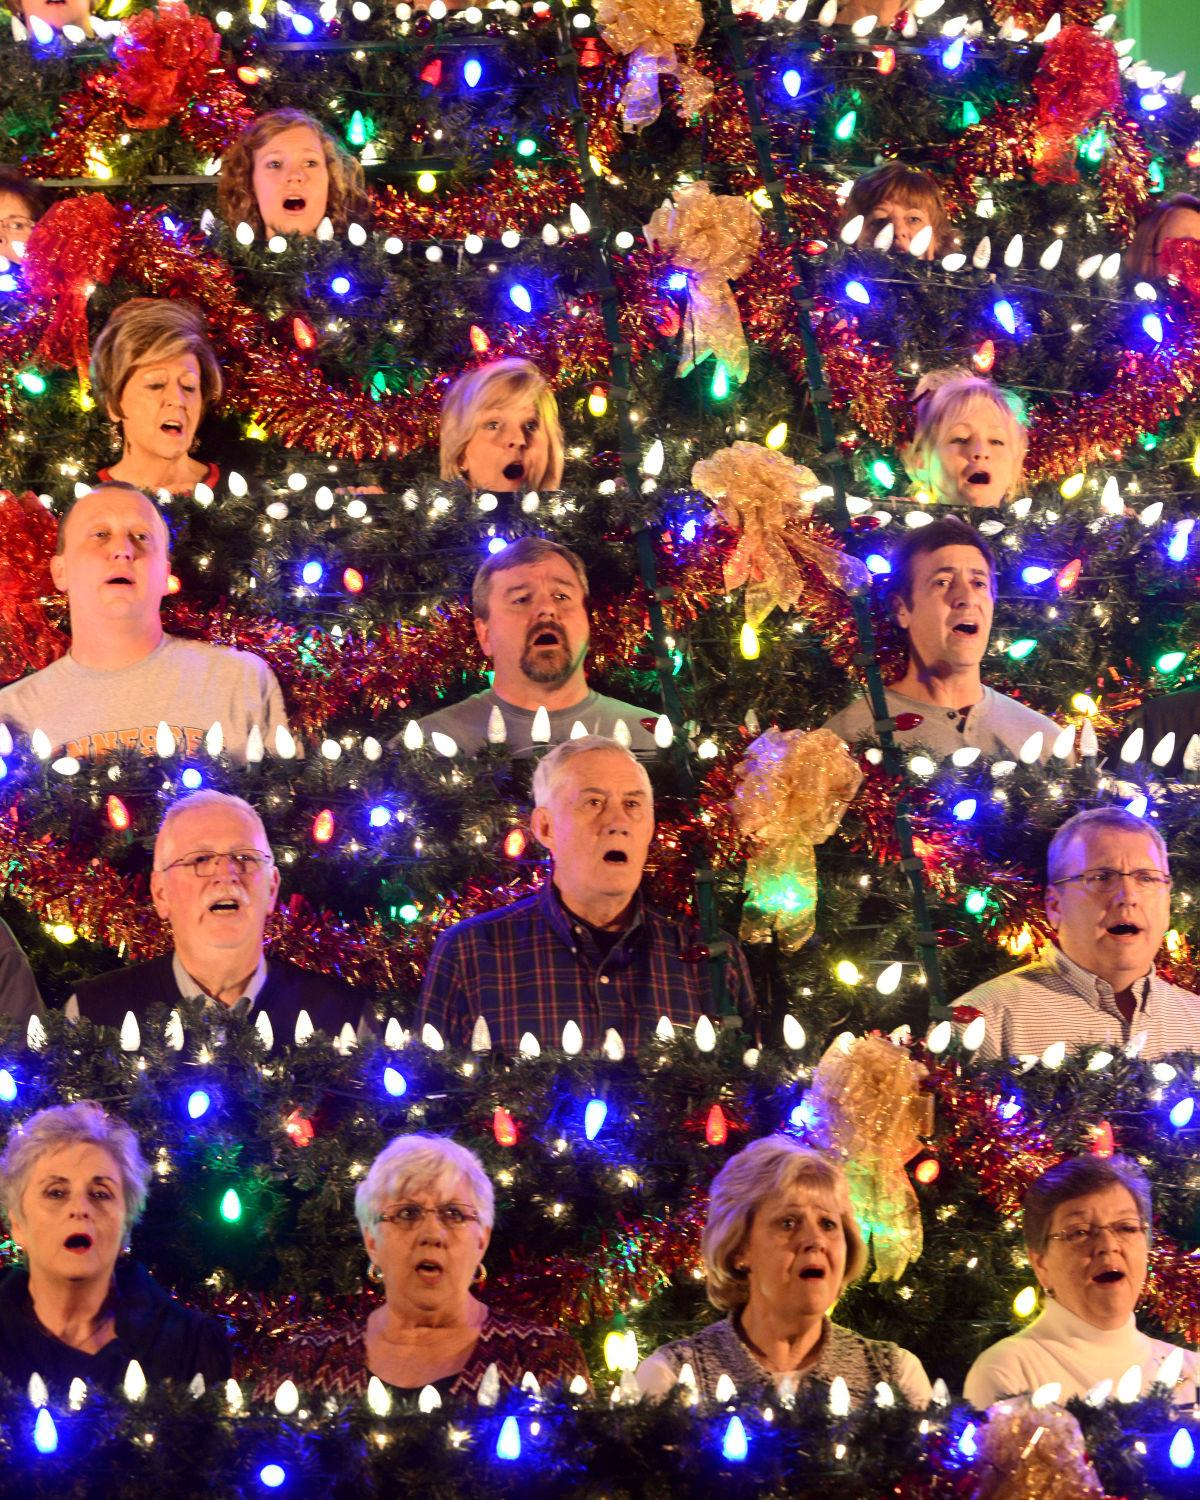 Christmas Trees Bristol: Church Members Use Time, Talents To Give Community A